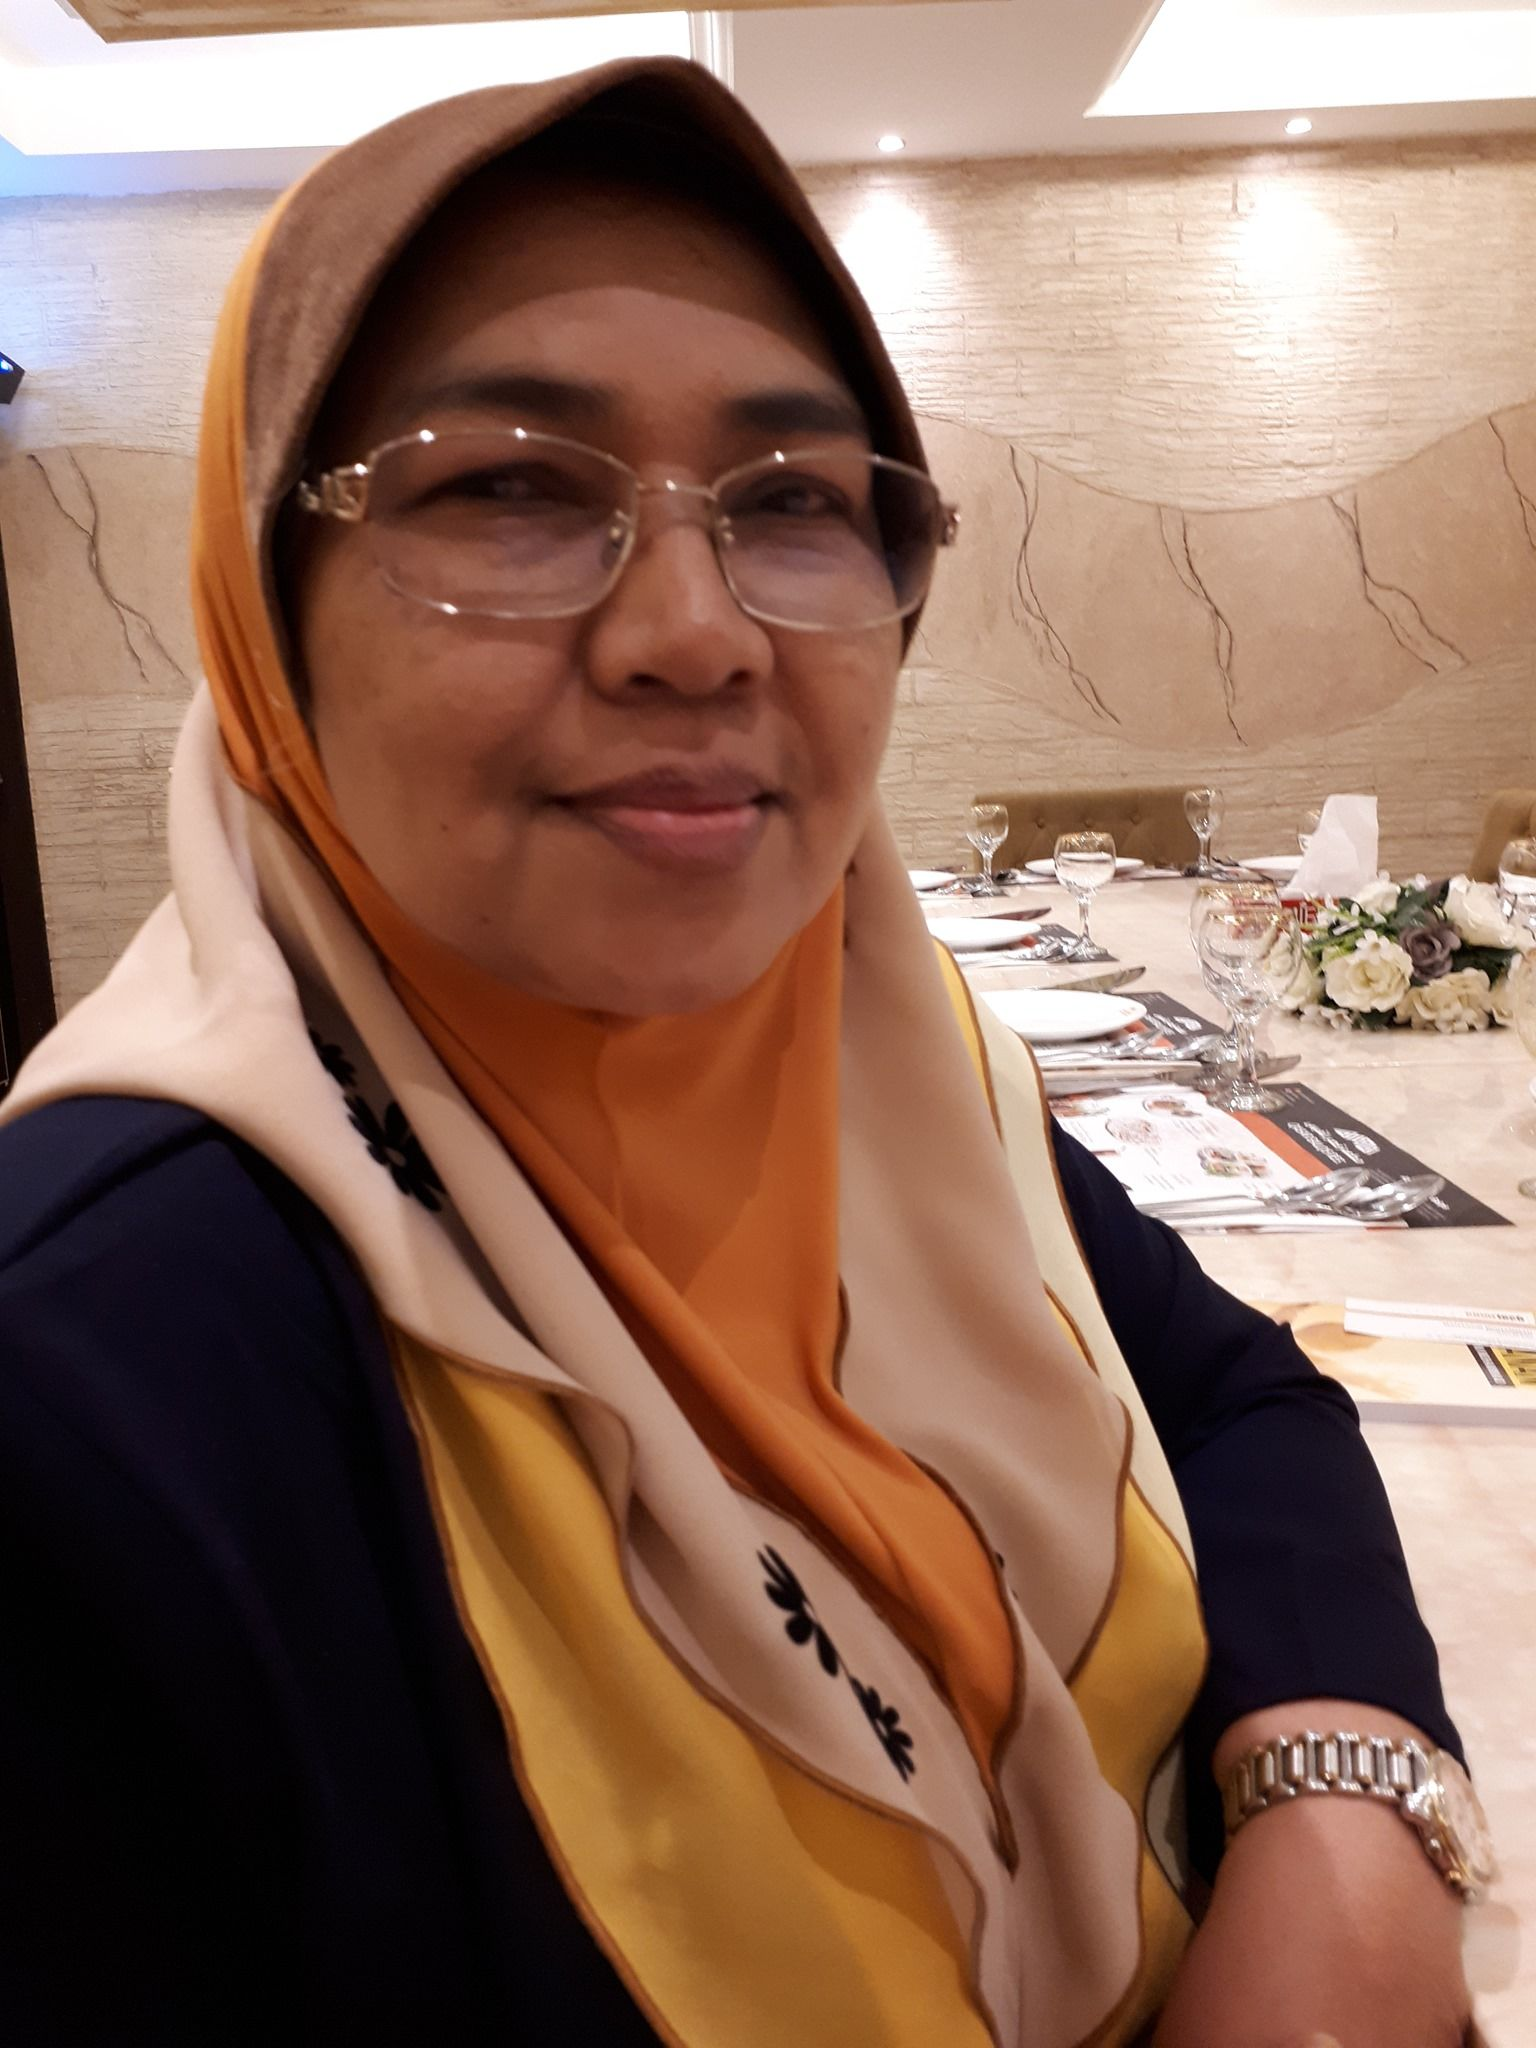 Azizah Mohd Yusoff sits at a restaurant table. She is wearing a layered, ruffled headscarf and glasses.